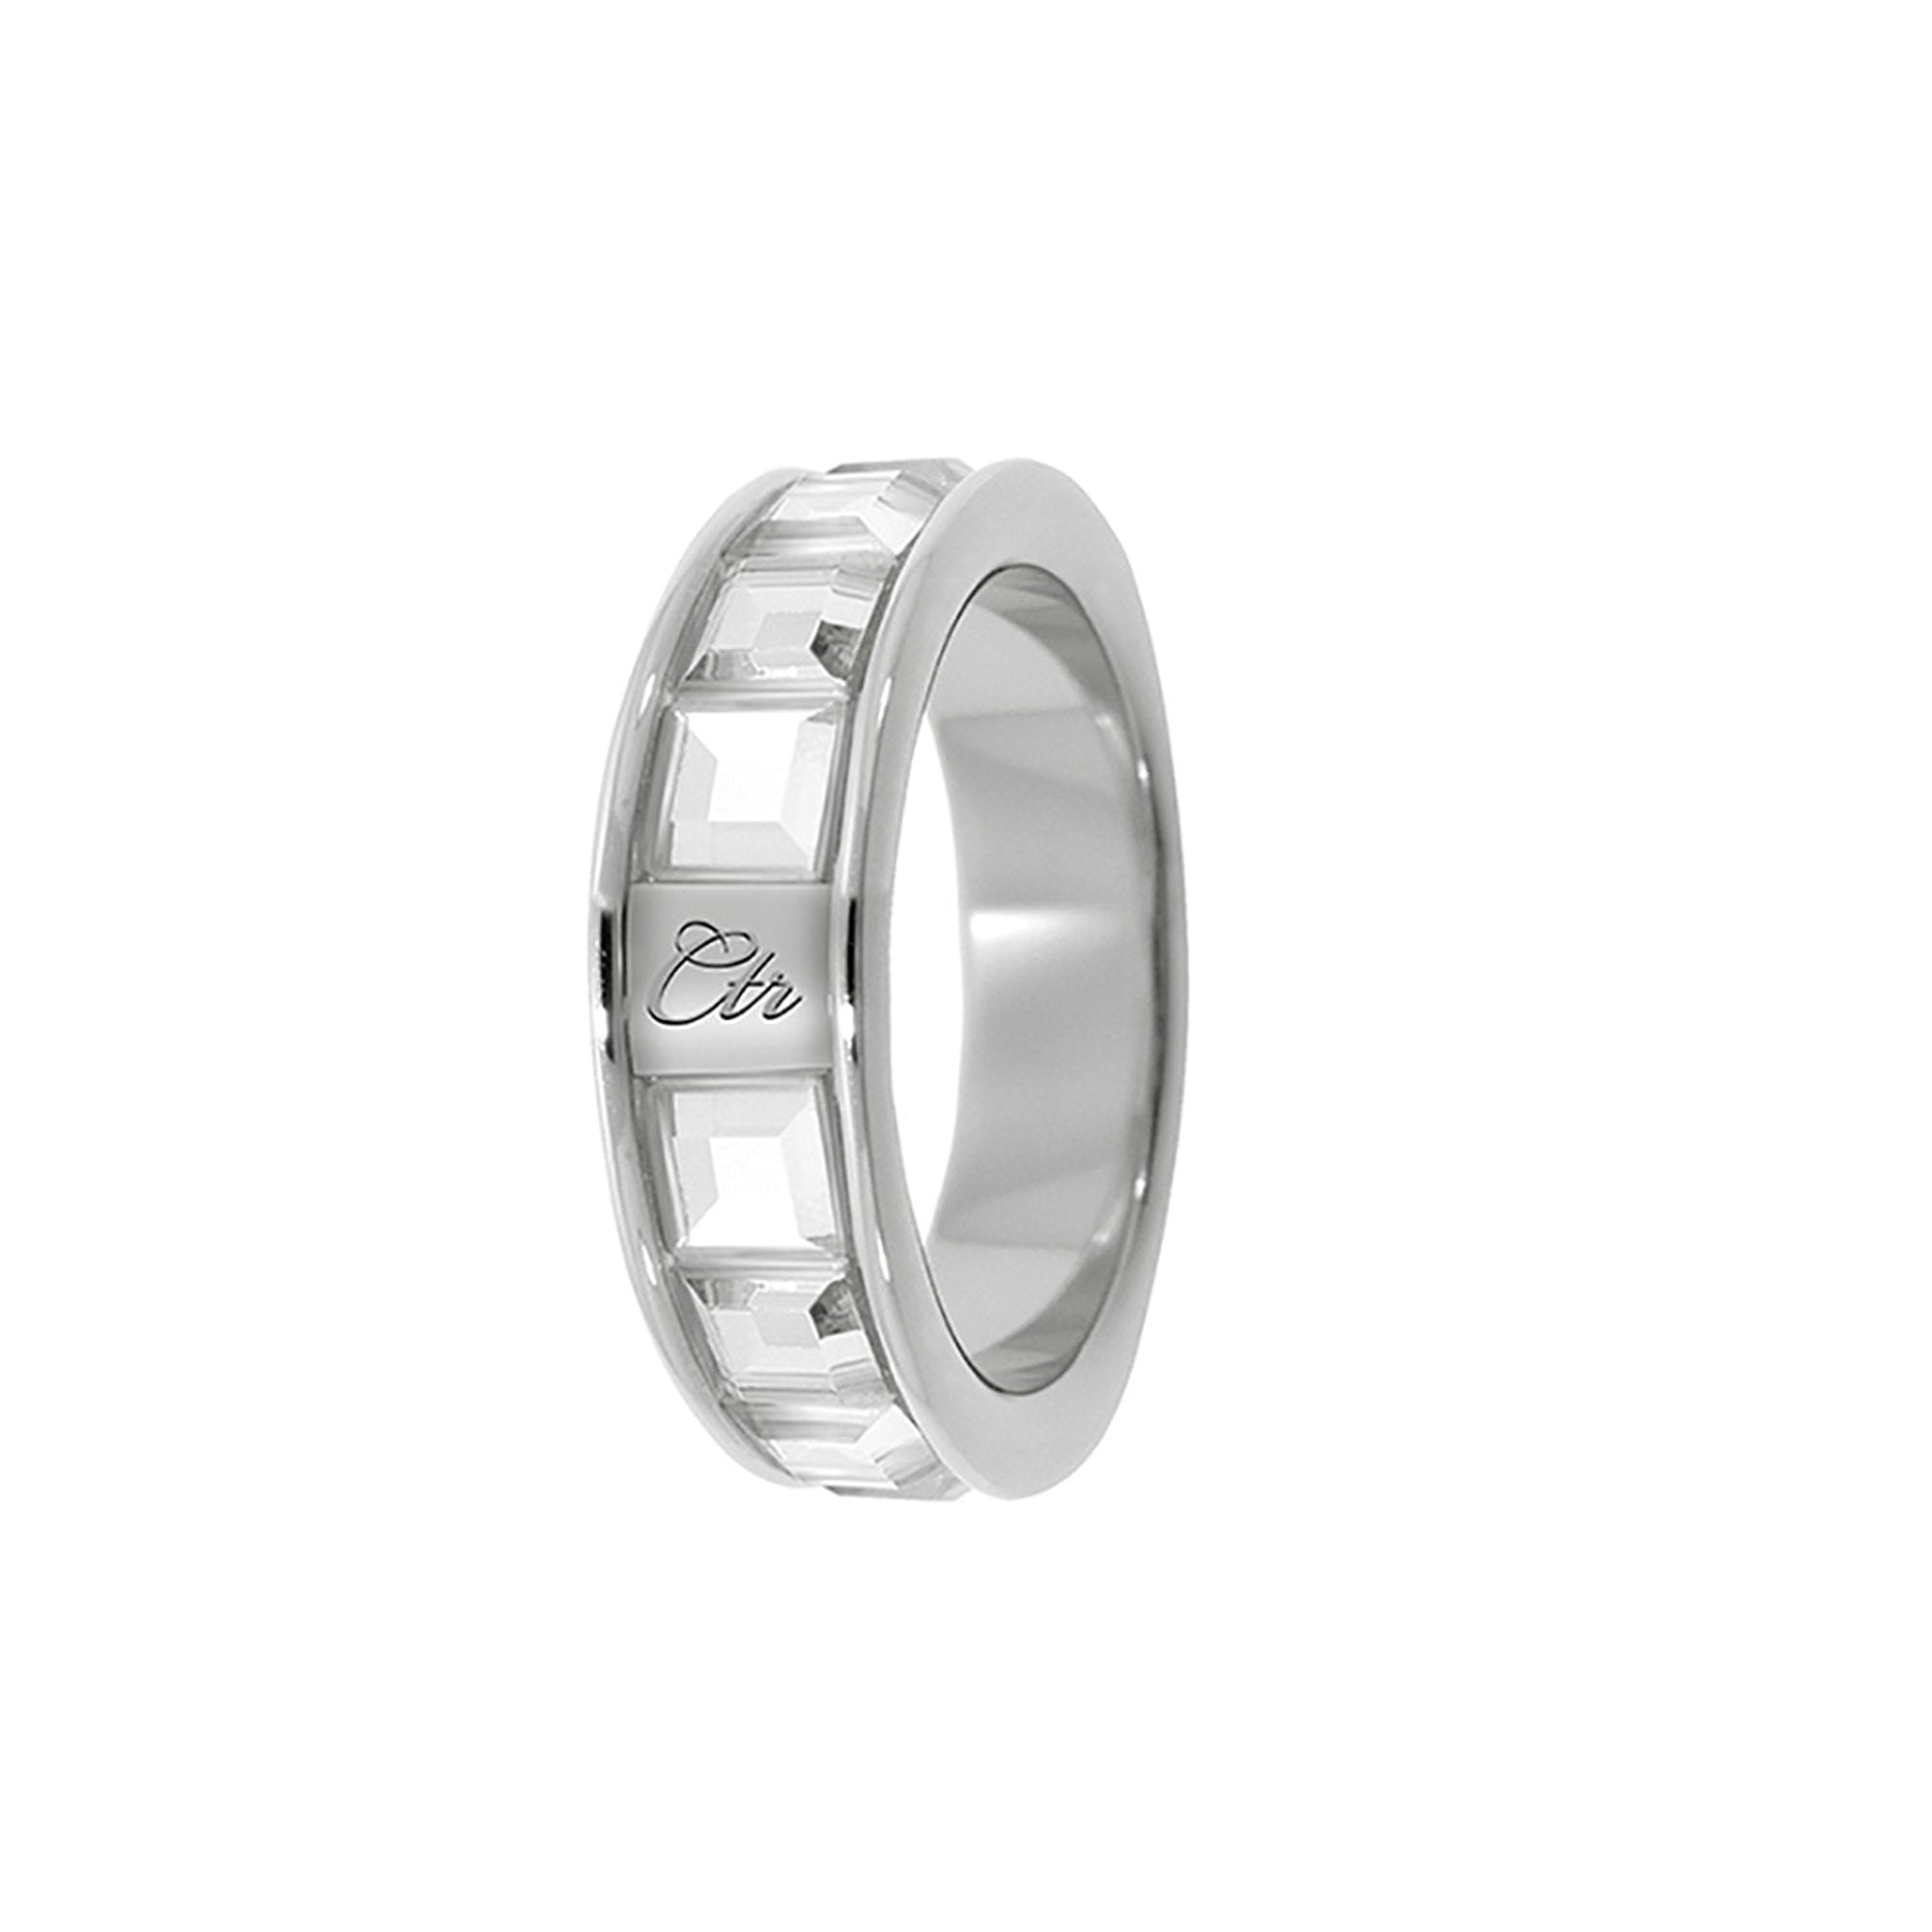 J162 CTR Ring Glimmer Stainless Steel with White CZ Stones